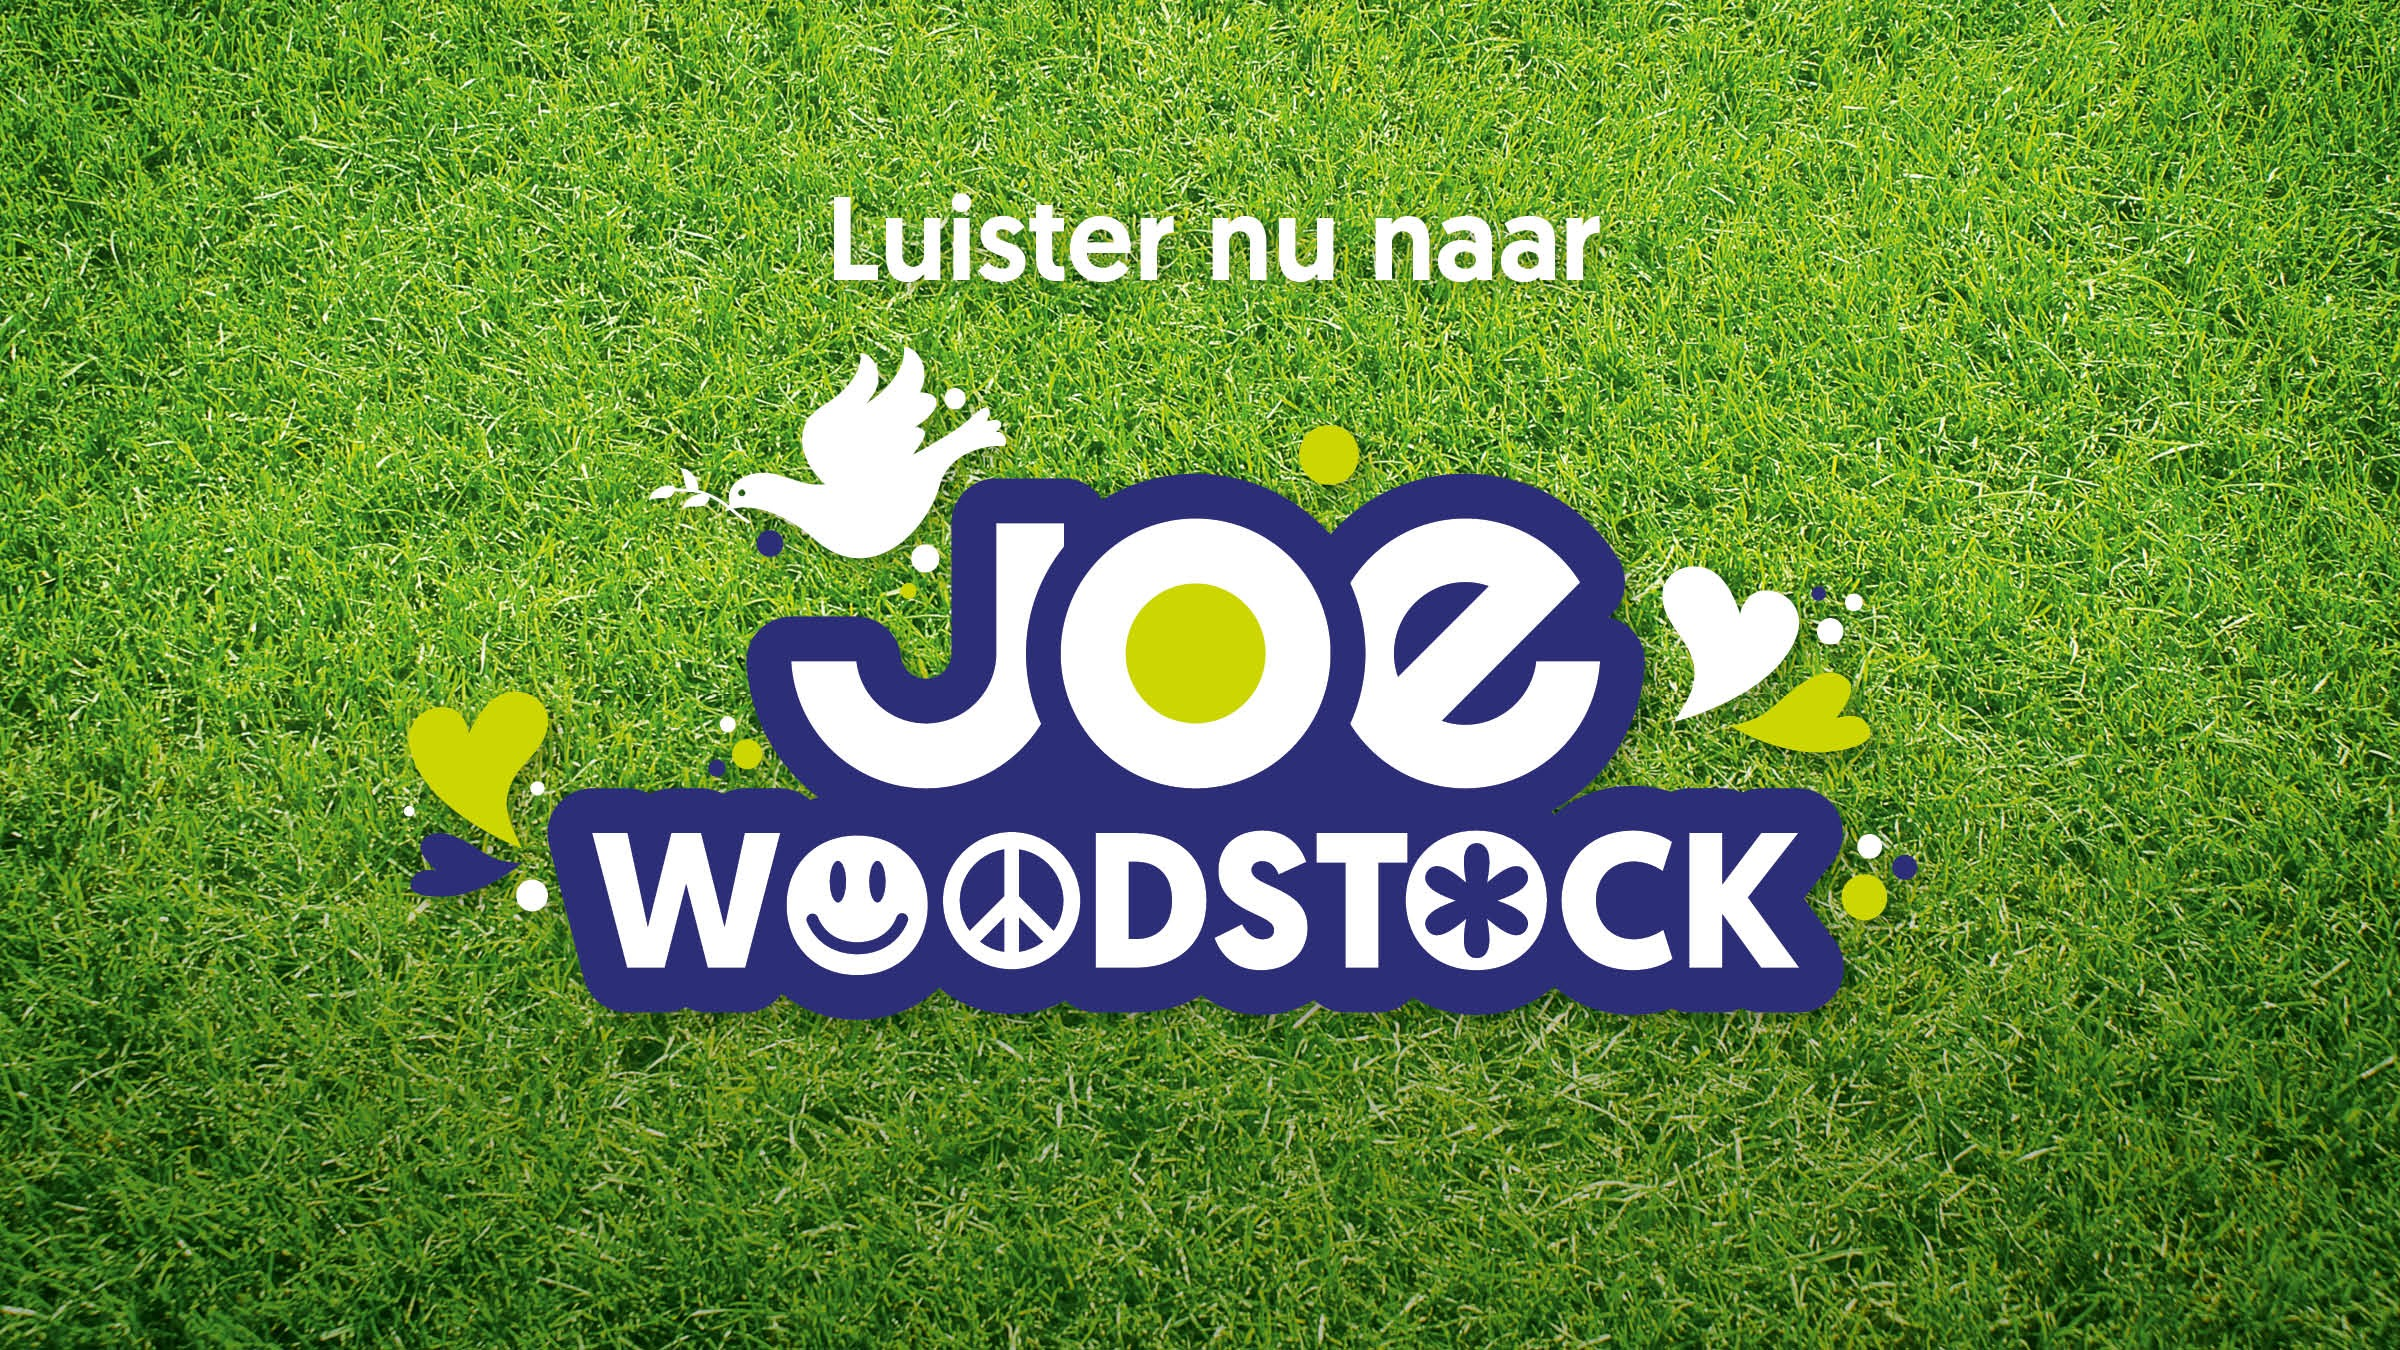 Joe woodstock site nologo 2